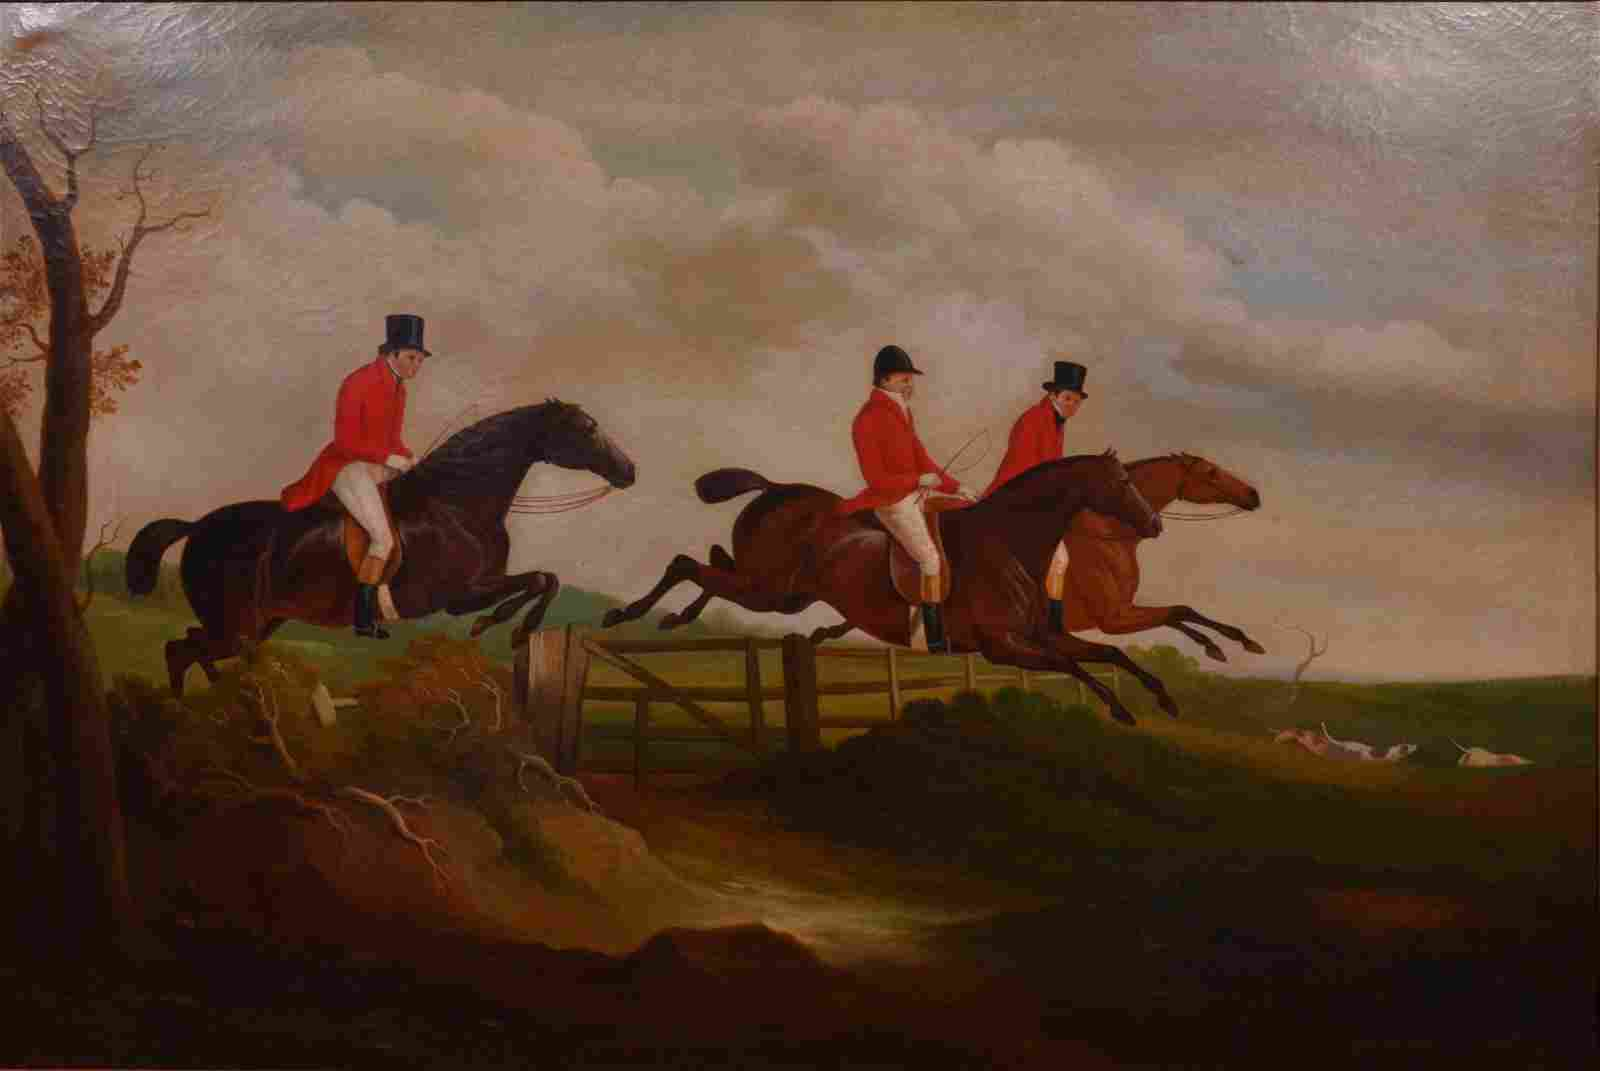 Reproduction Painting of an English Hunt Scene